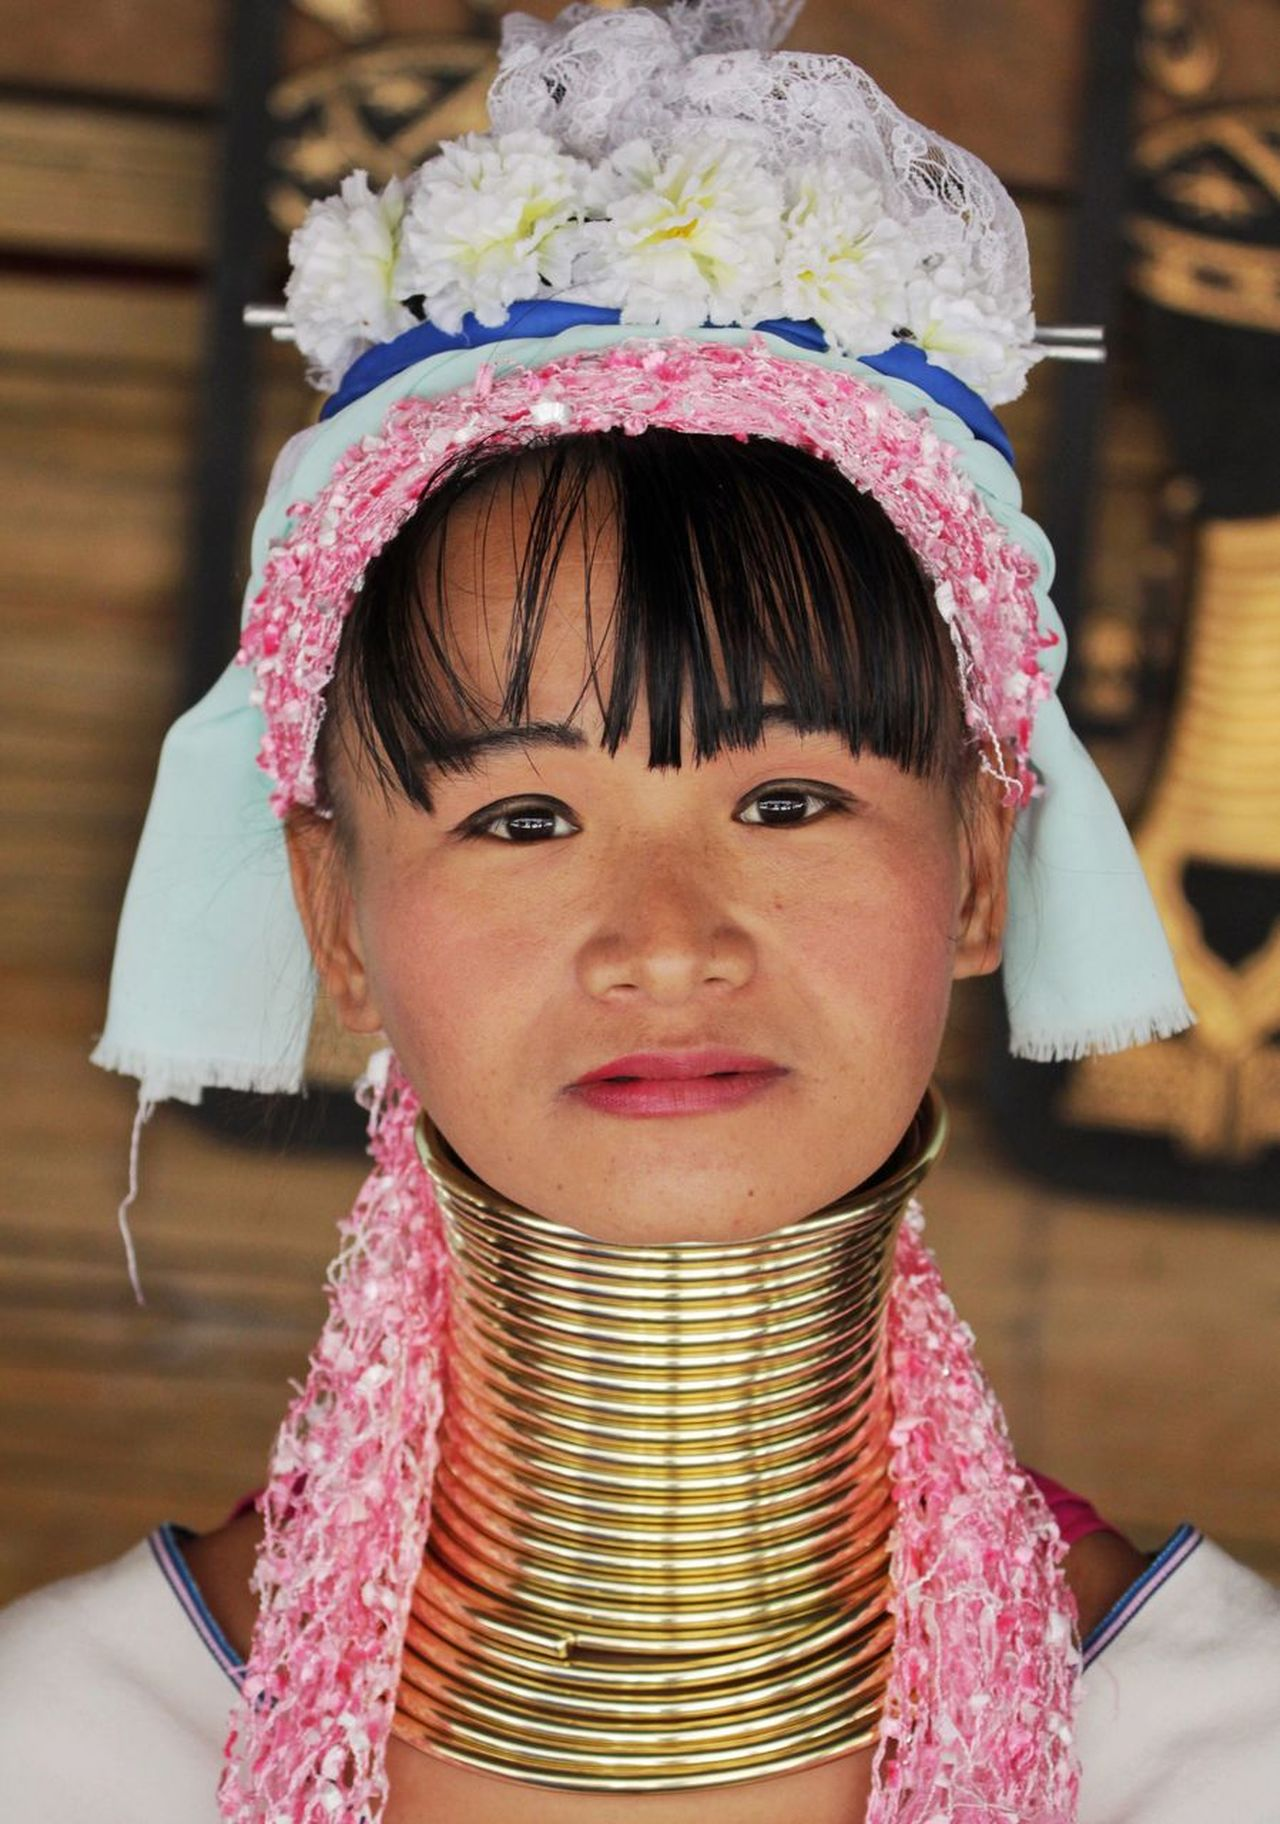 Portrait Real People Beauty One Person Headwear Headshot Neck Necklace Long Neck  Ring Rings Gold Tribal Tribe EyeEm Best Shots Check This Out Close-up Happiness Traditional Clothing Smiling Outdoors Women Around The World Day People in Thailand MISSIONS: The Portraitist - 2017 EyeEm Awards